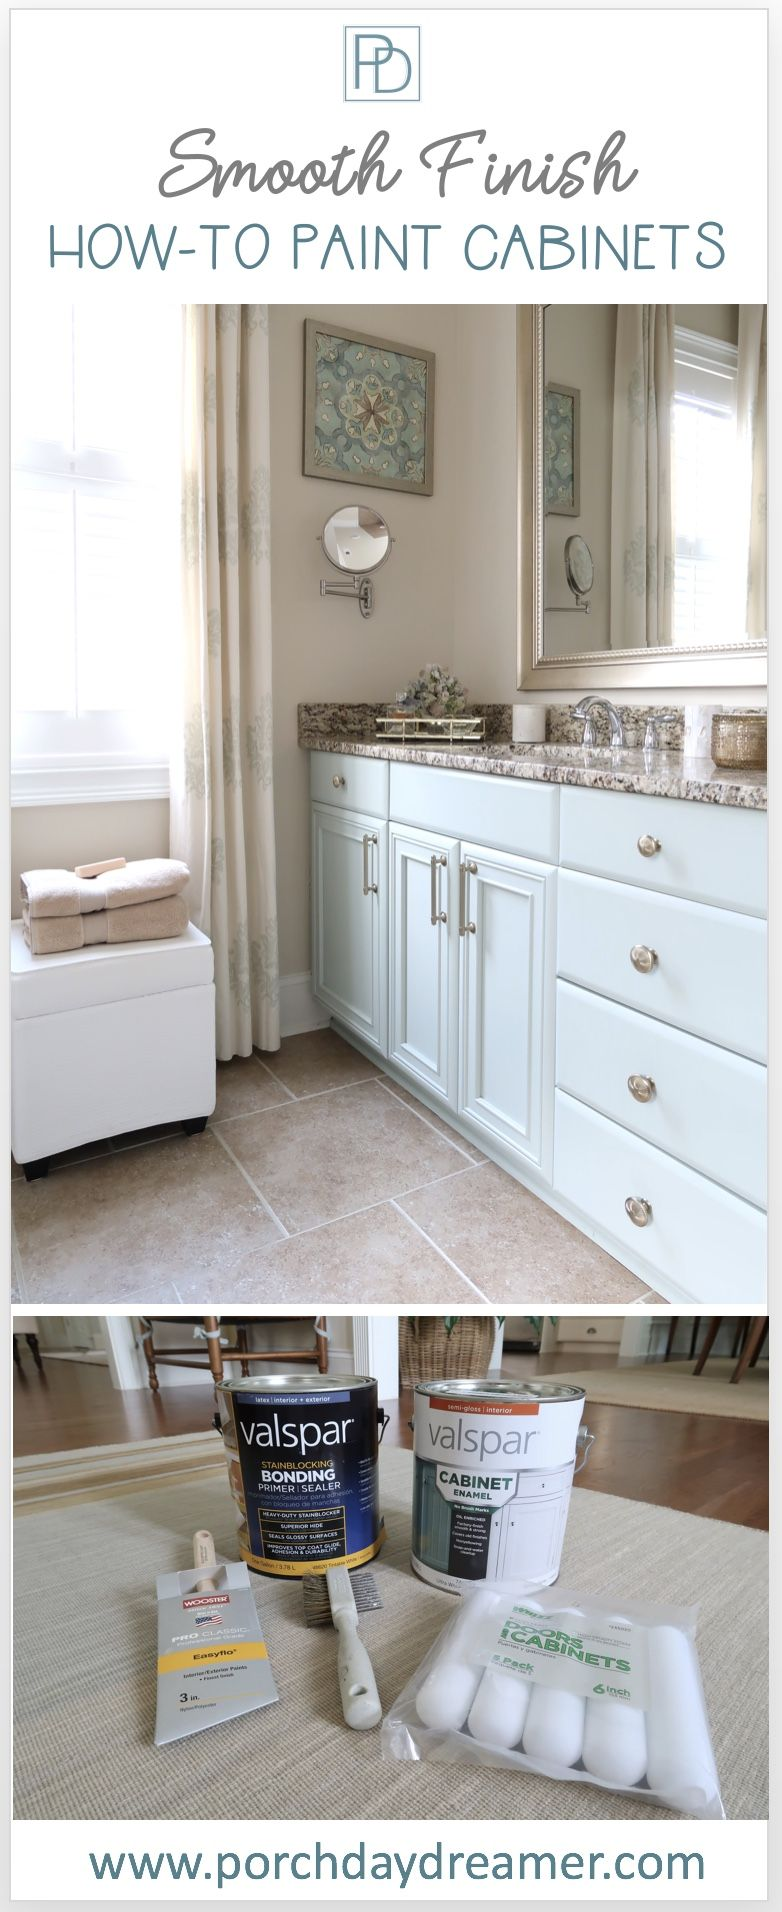 Painting cabinets howto get a smooth finish every time hometalk